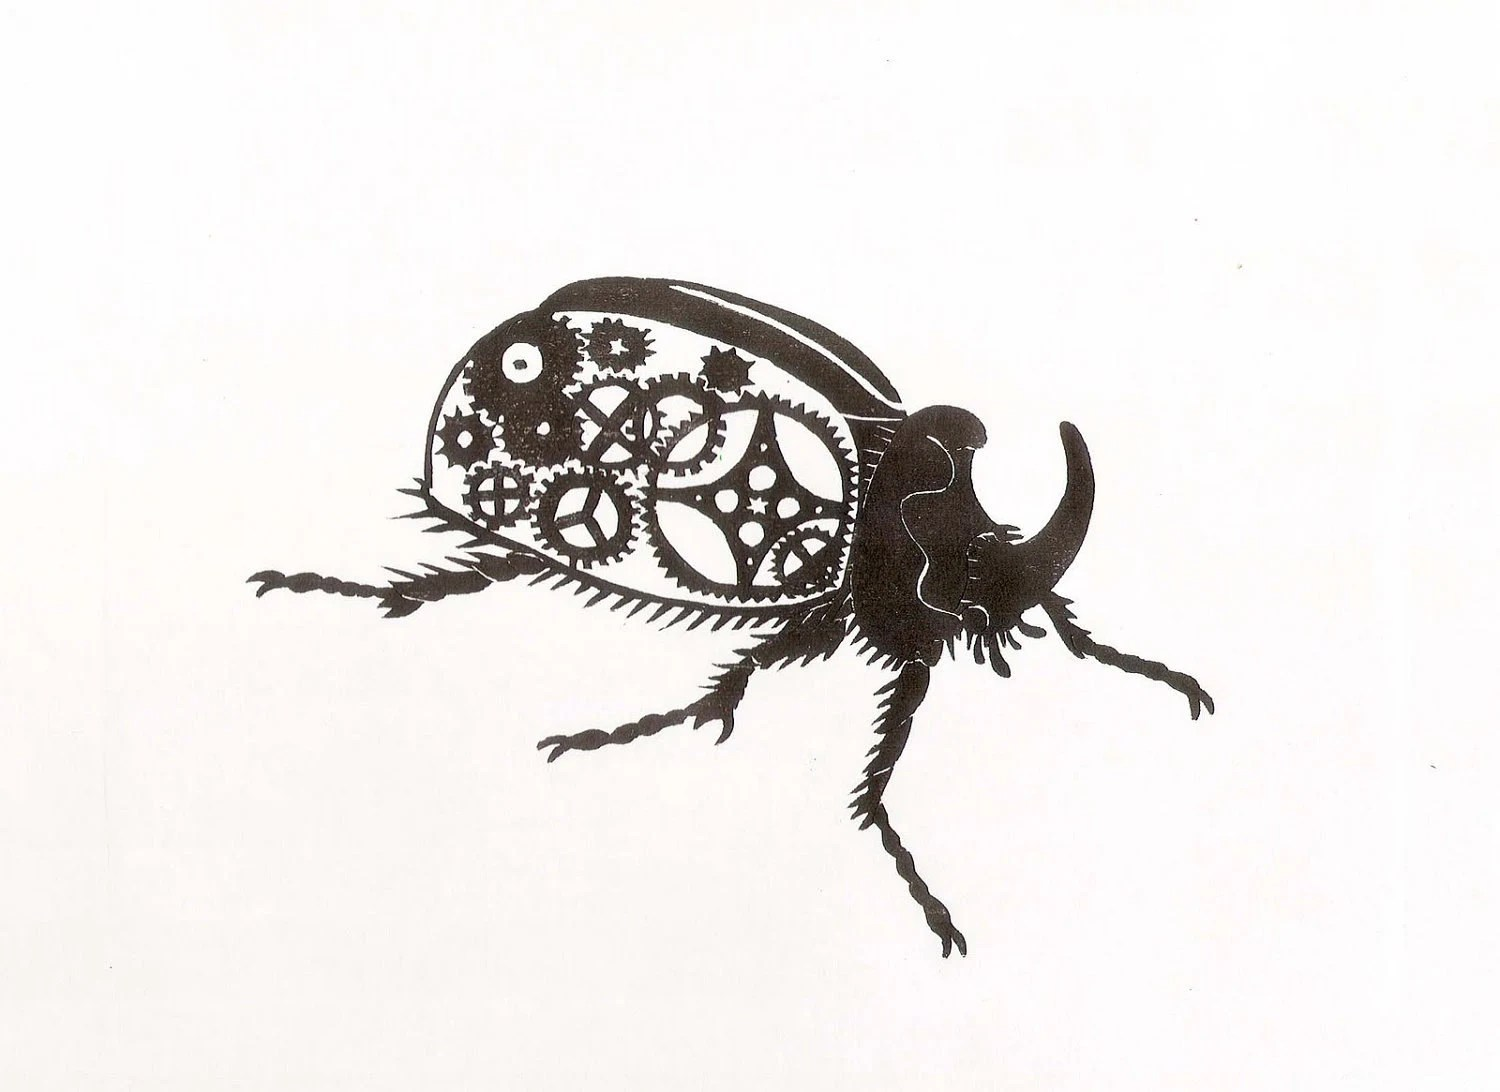 rhinoceros beetle colouring pages